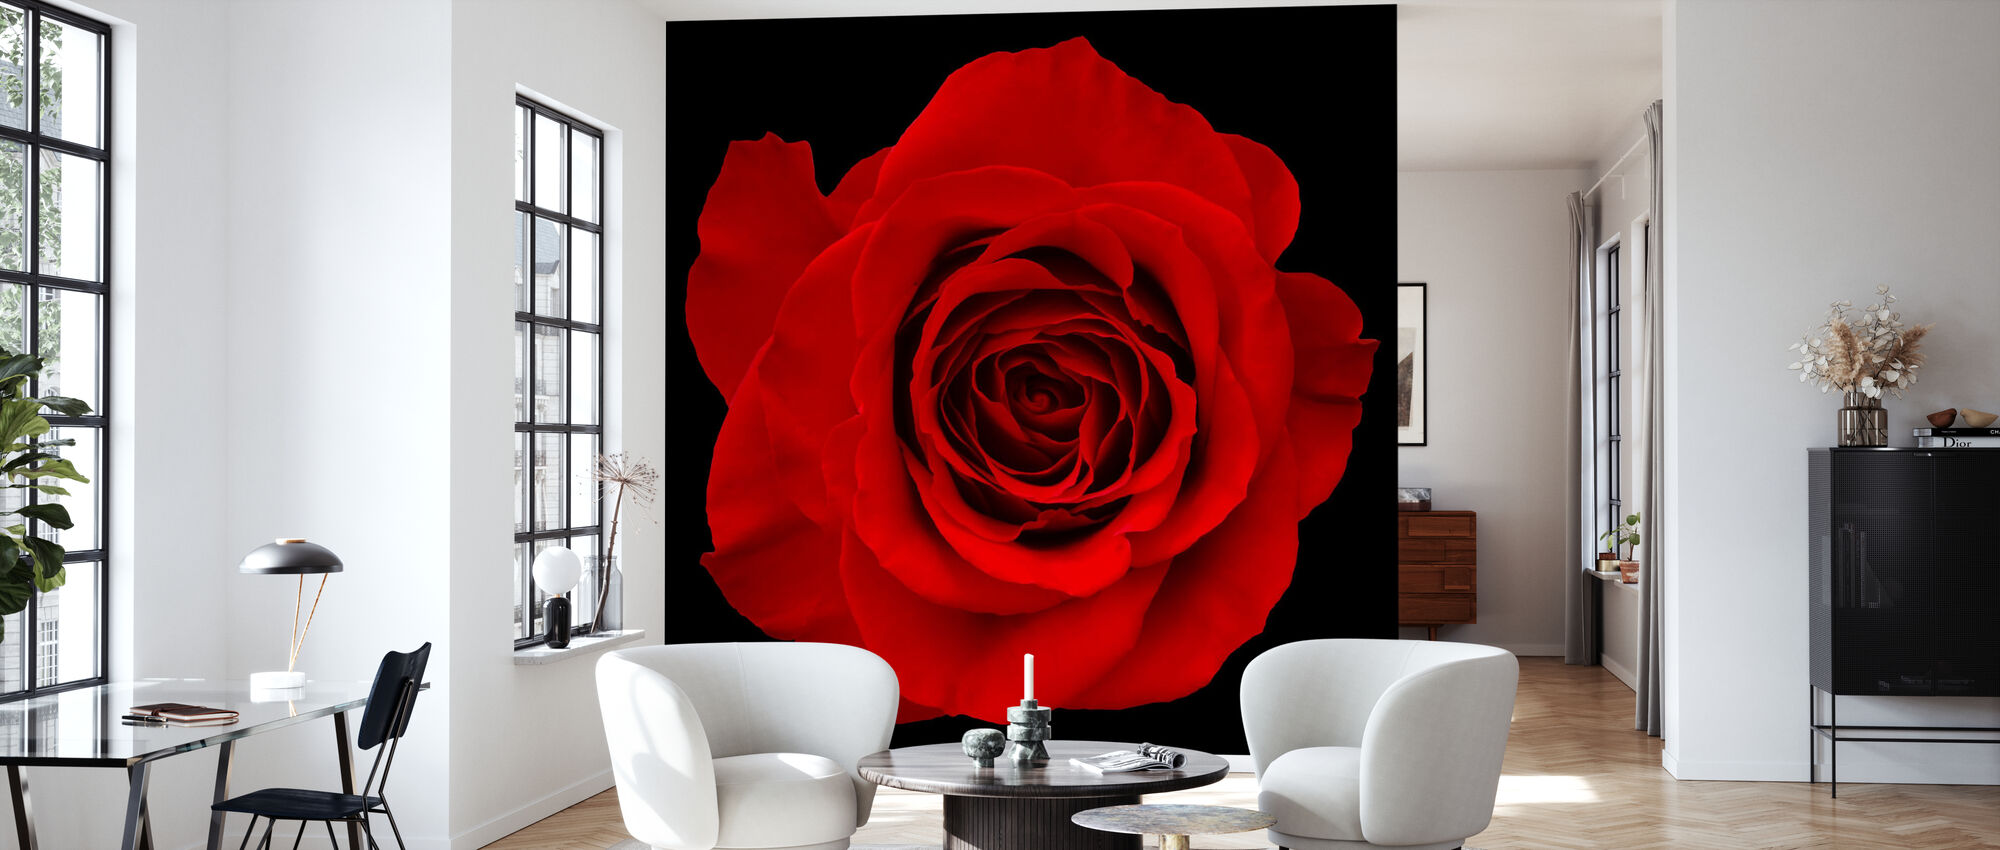 Red Rose Isolated - Wallpaper - Living Room